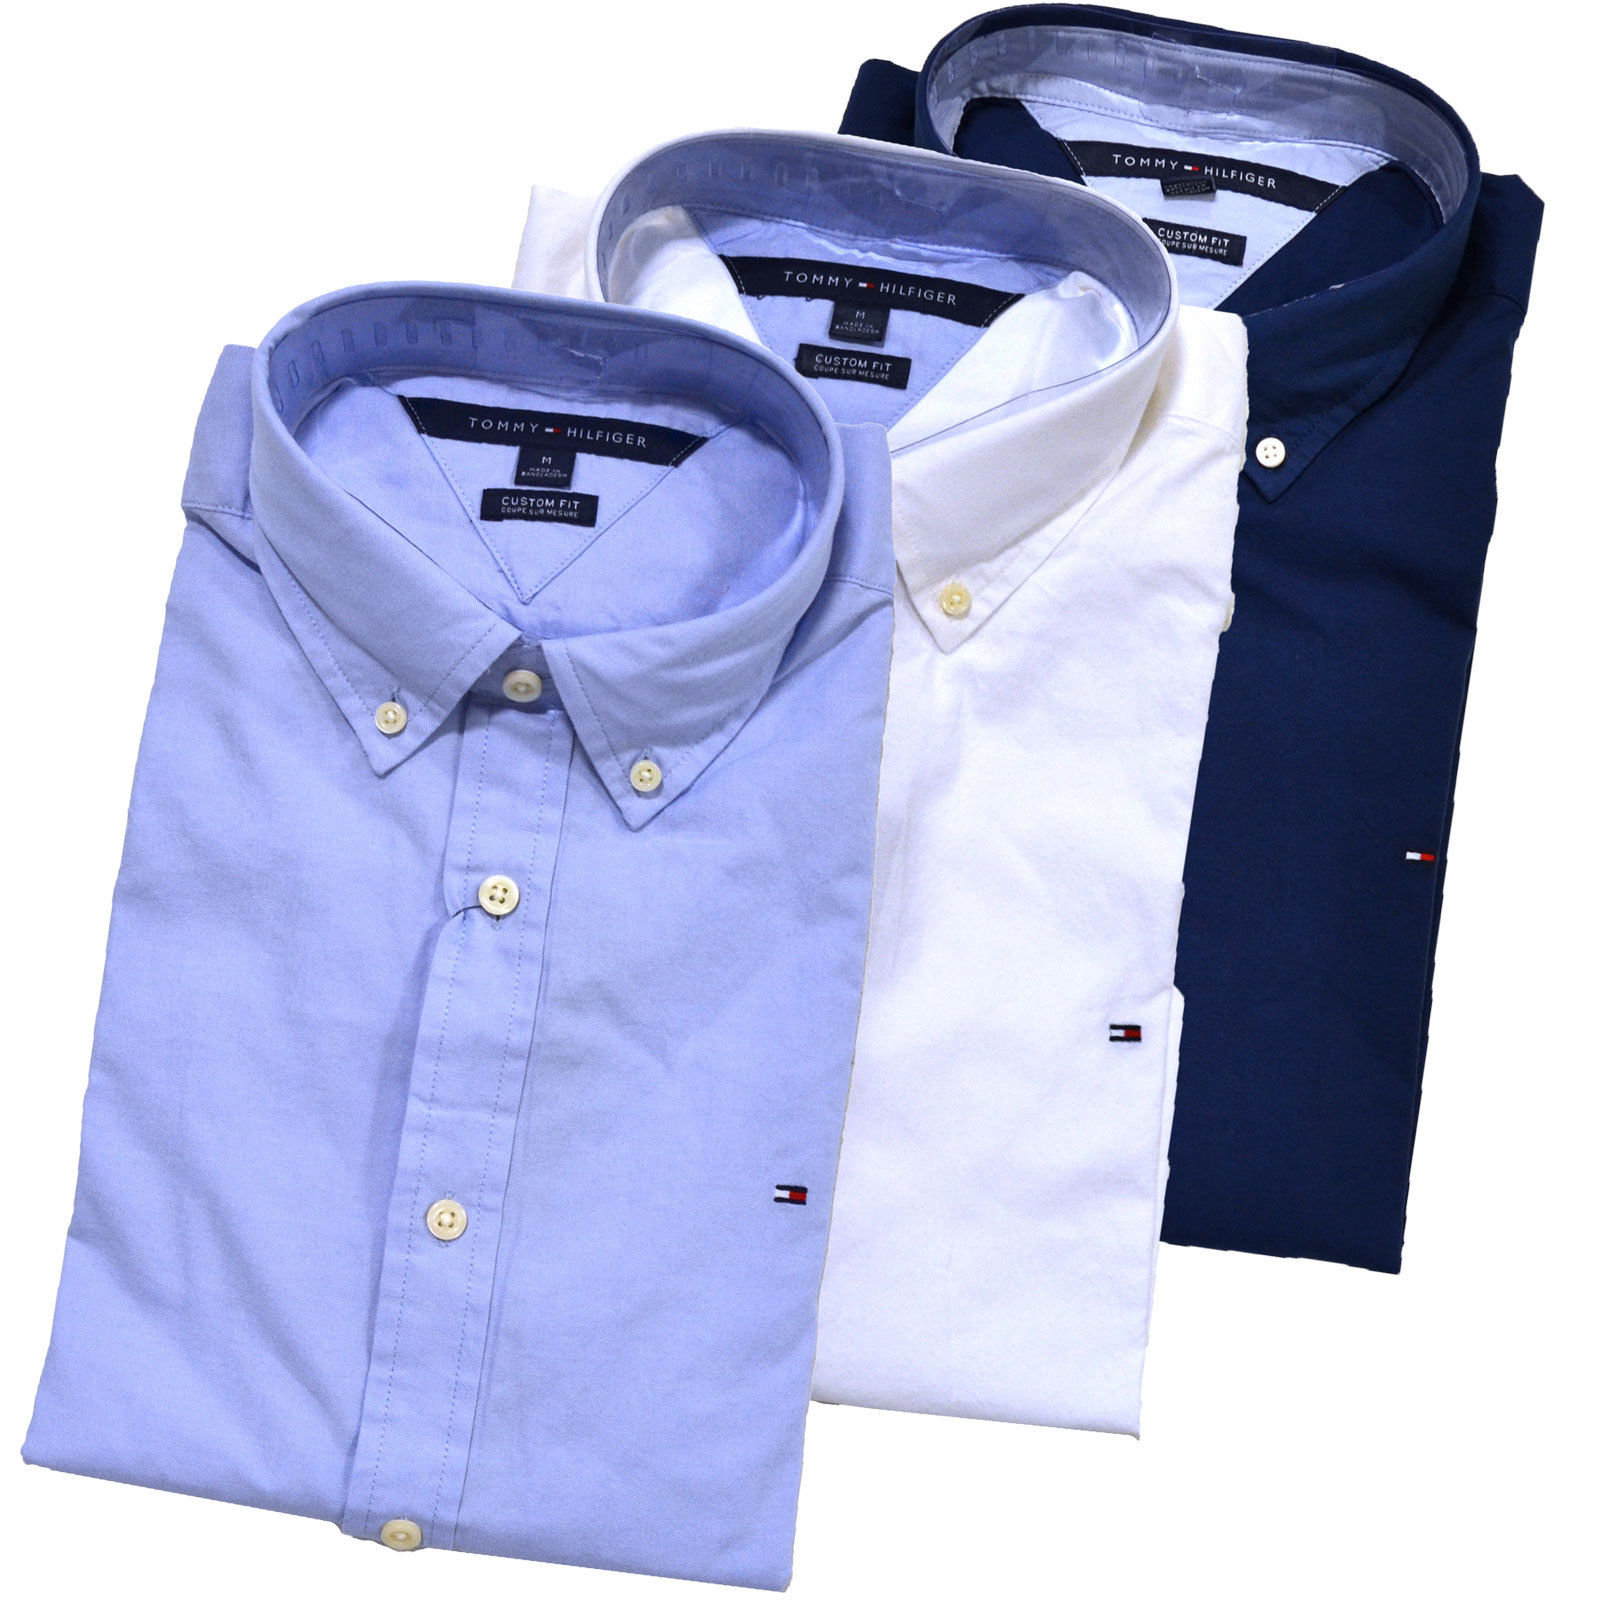 Super Deal of Dress Shirts Pack of 3